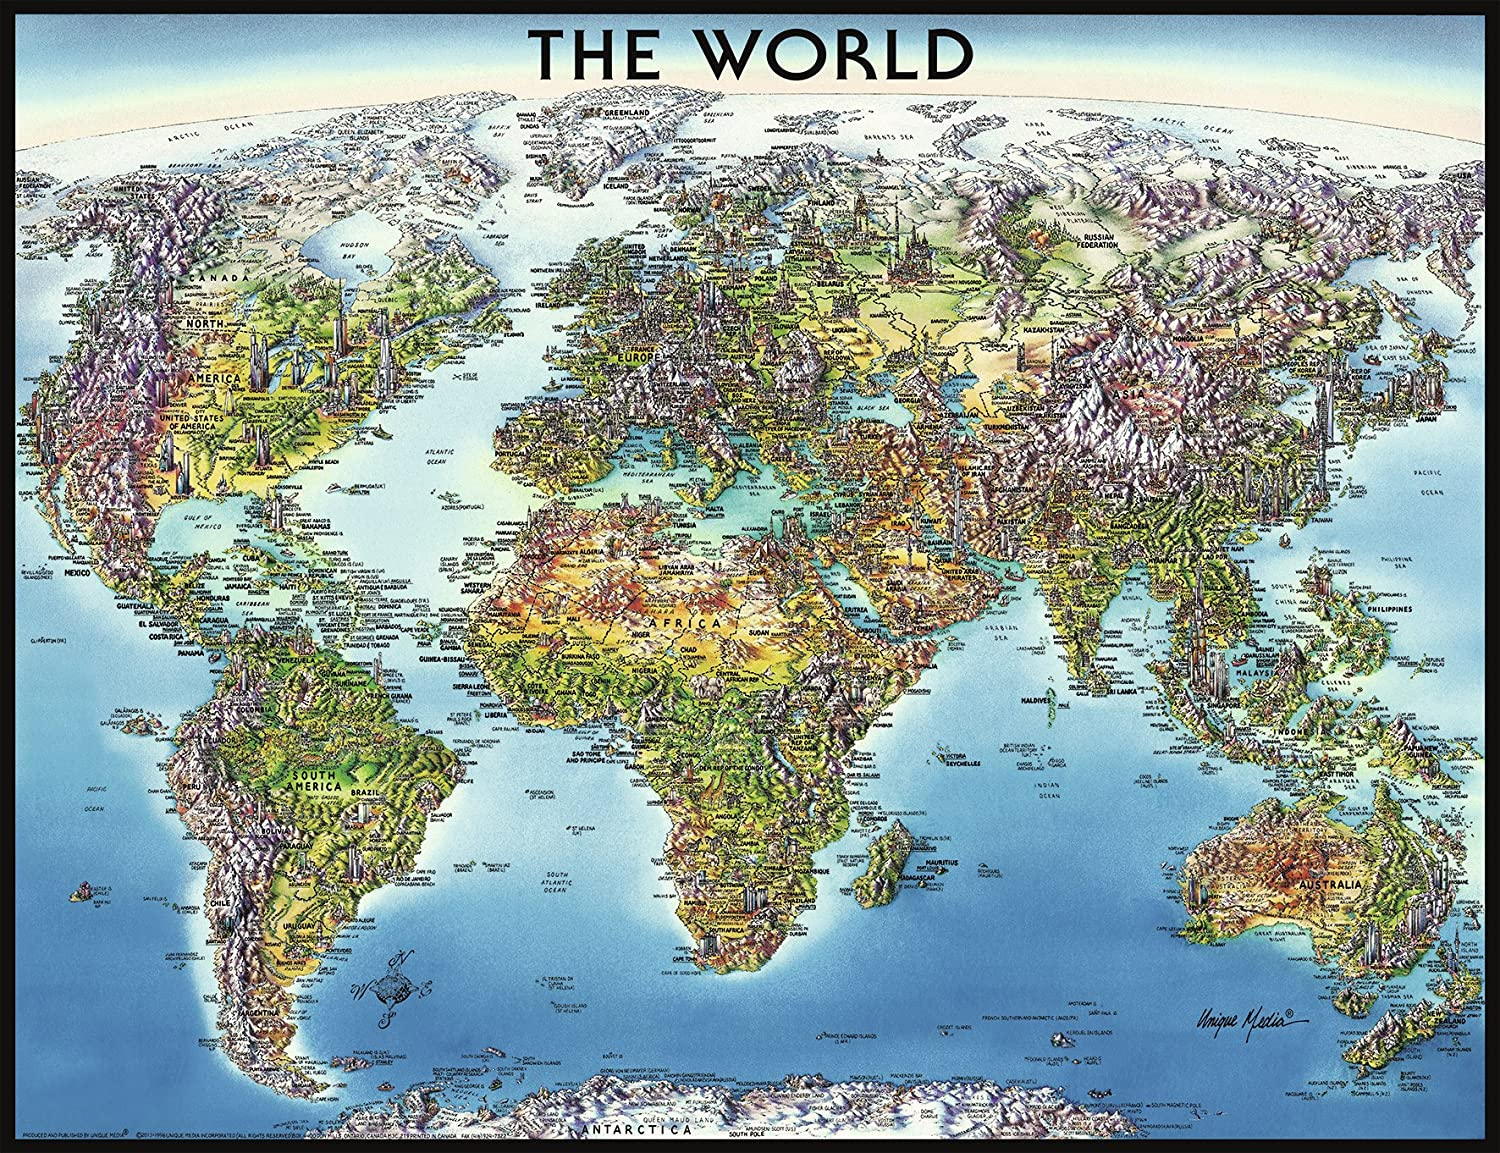 Ravensburger world map jigsaw puzzle 2000 piece amazon ravensburger world map jigsaw puzzle 2000 piece amazon toys games gumiabroncs